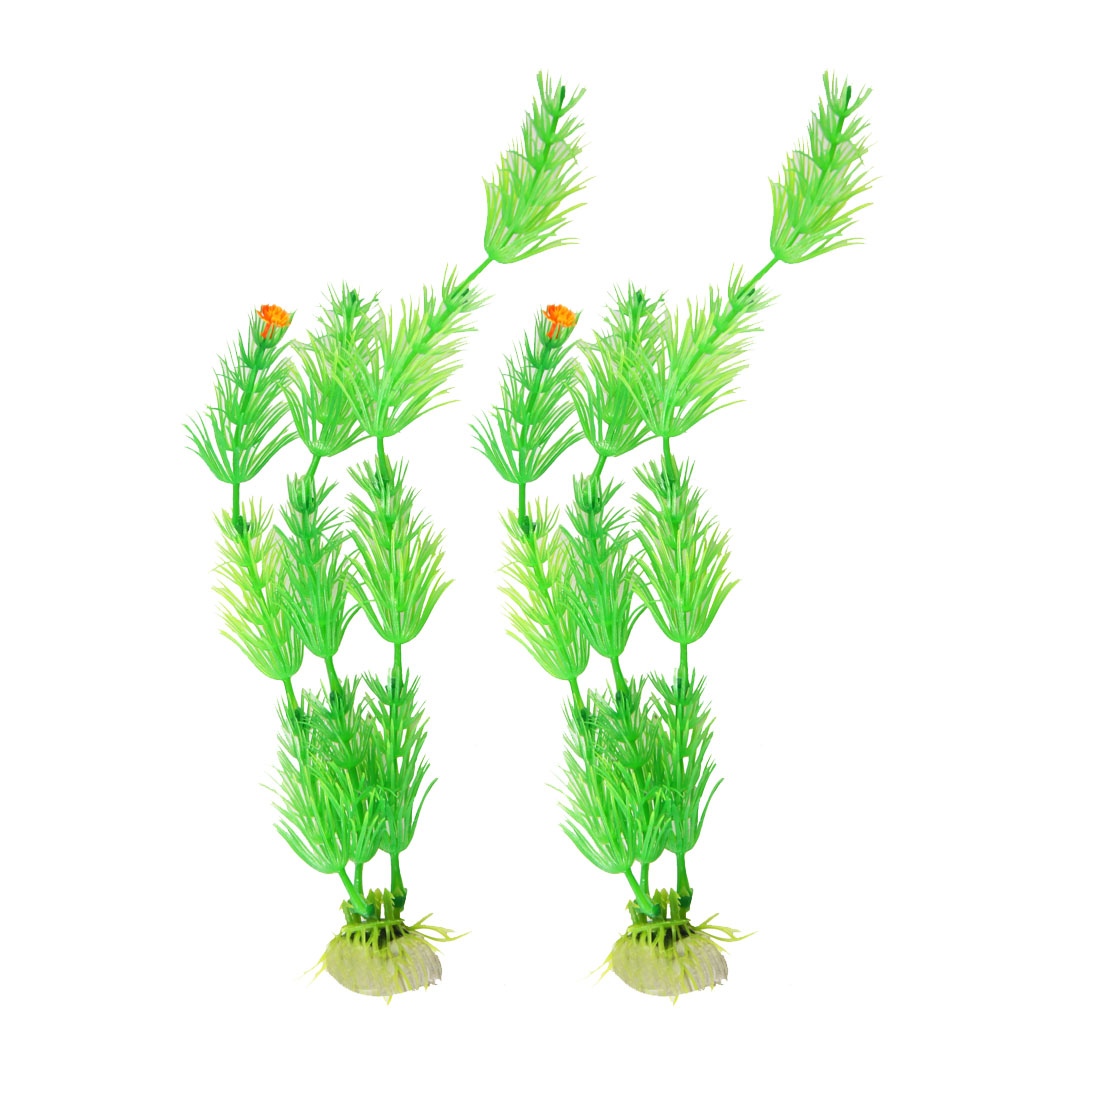 "10"" High Green Manmade Water Plant Grass 2 Pcs for Fish Tank Aquarium"